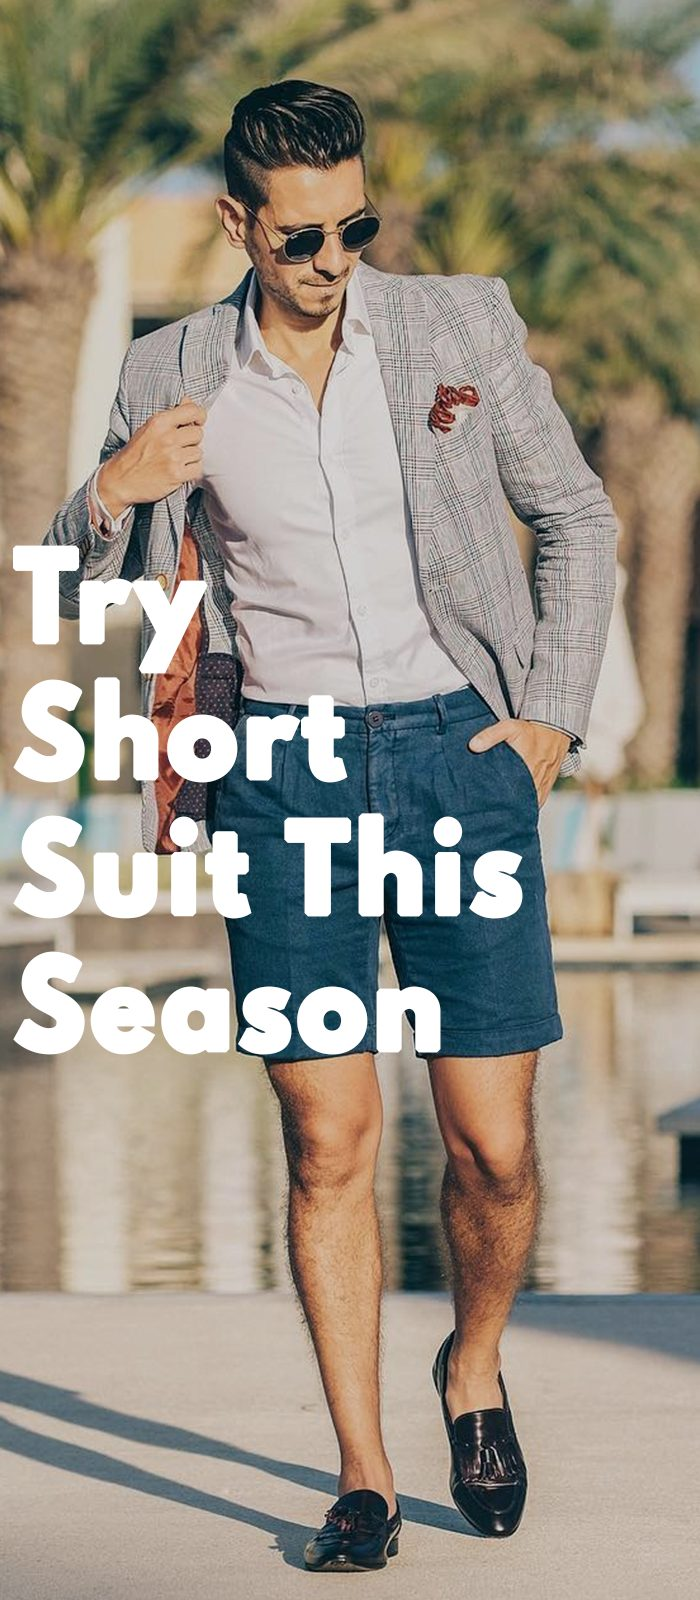 Try Short Suit This Season